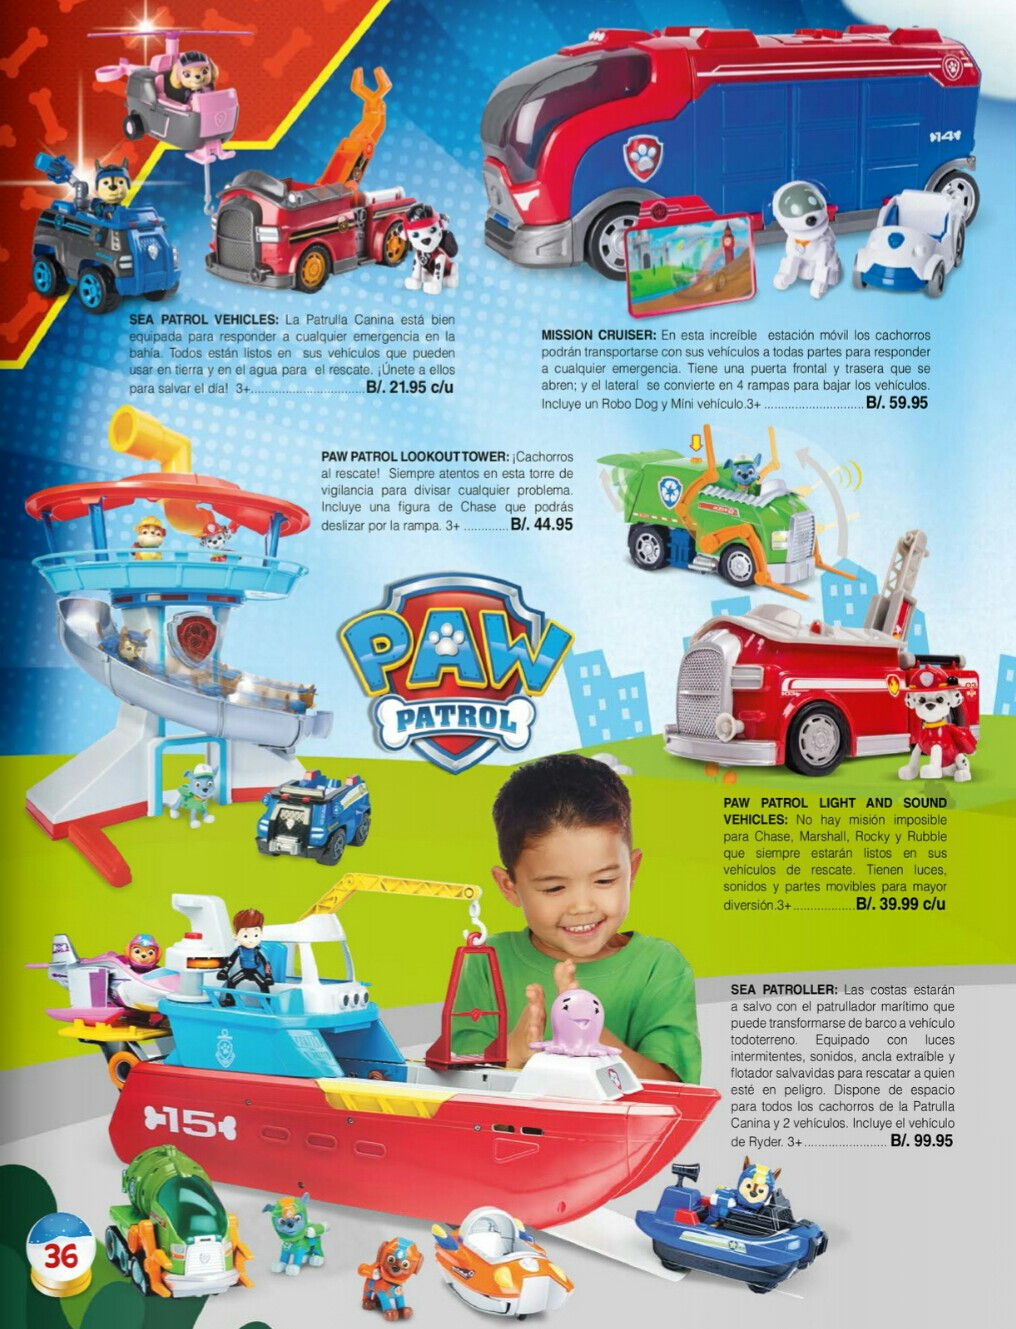 Catalogo juguetes Stivie toys 2018 p36